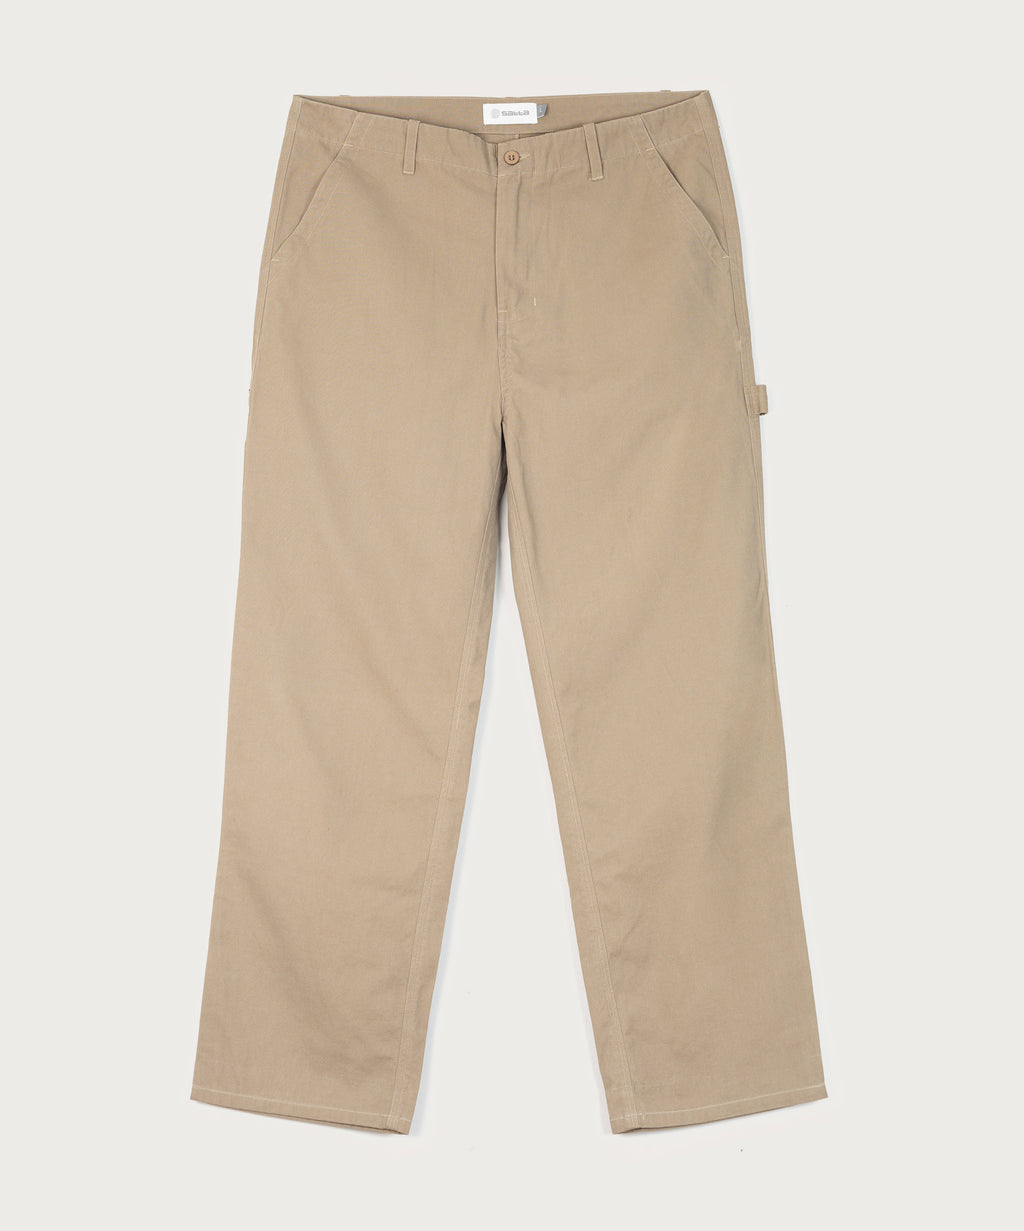 Satta Digg Pants - Tan | SATTA